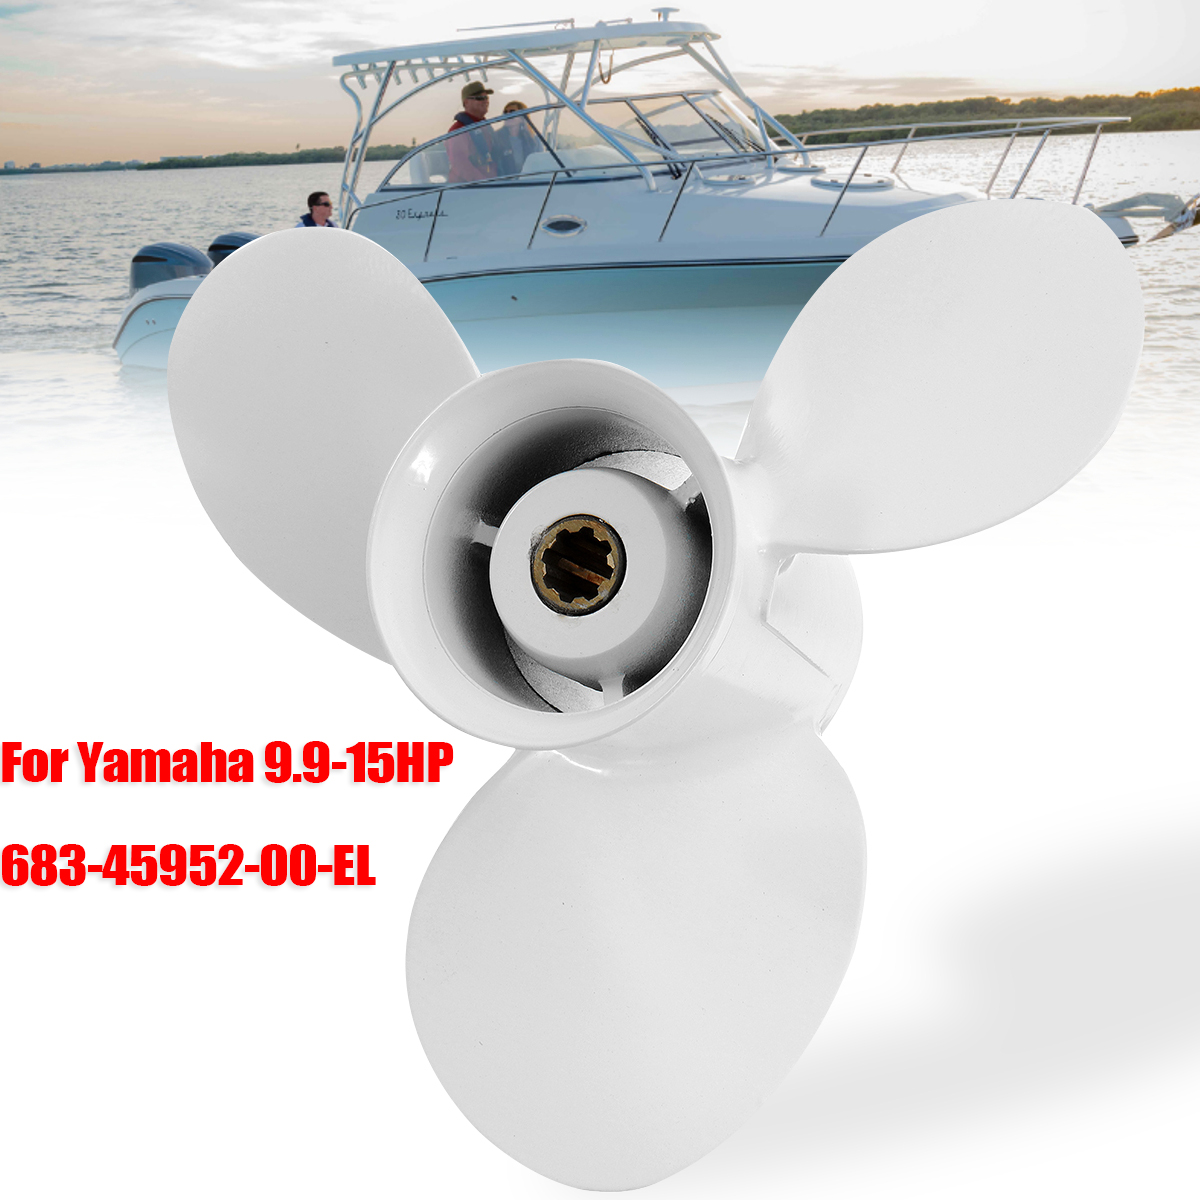 Boat Parts & Accessories United 683-45952-00-el 9 1/4 X 9 3/4 Aluminum Alloy Boat Outboard Propeller For Yamaha 9.9-15hp R Rotation 3 Blades 8 Spline Tooths Back To Search Resultsautomobiles & Motorcycles